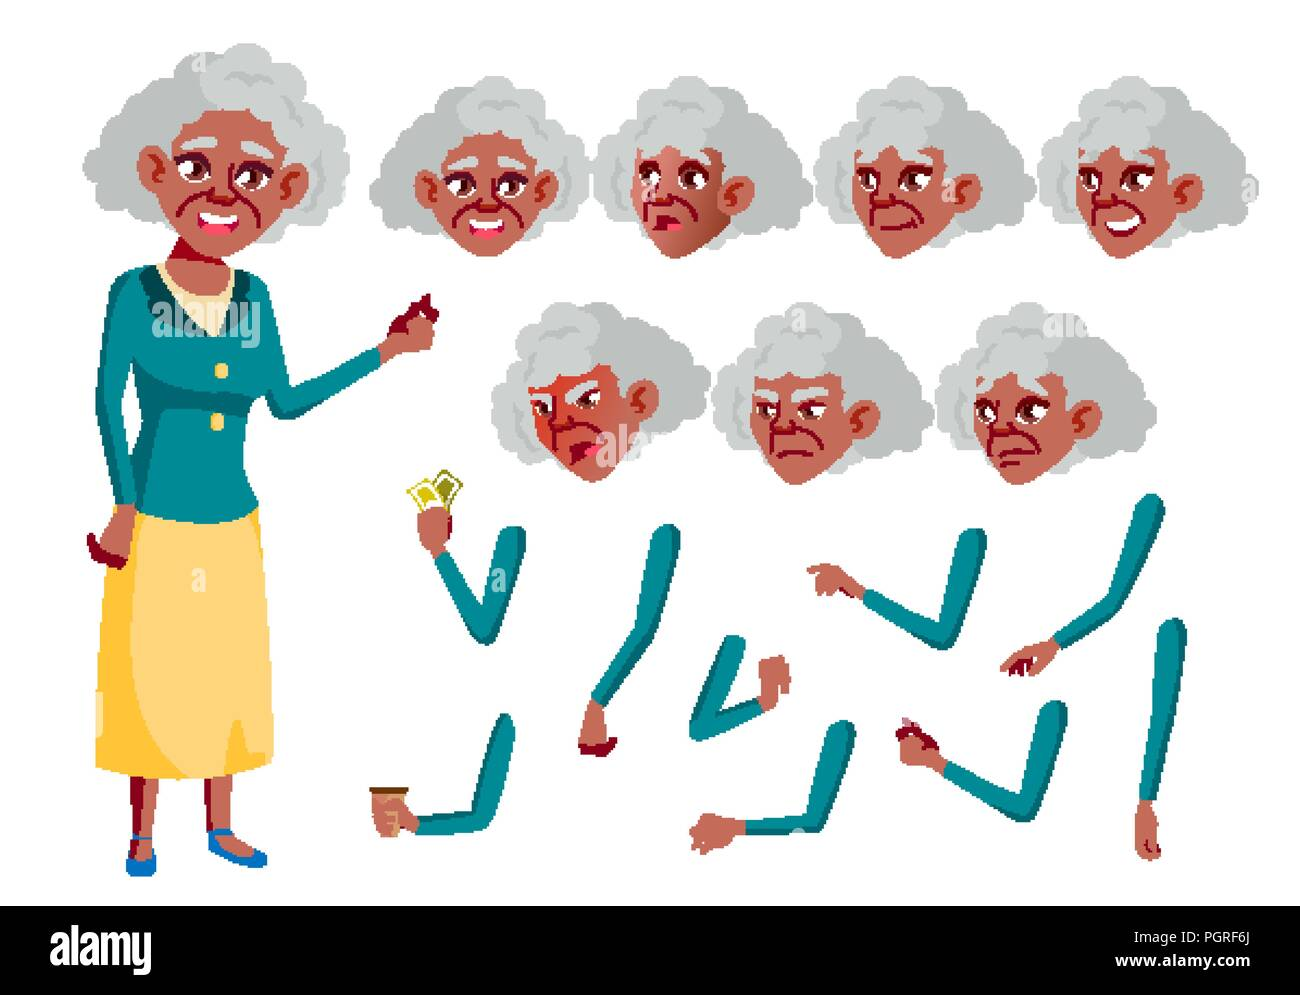 5210dad3b3c76 Senior Person. Aged, Elderly People. Fun, Cheerful. Face Emotions, Various  Gestures. Animation Creation Set. Isolated Flat Cartoon Character  Illustration